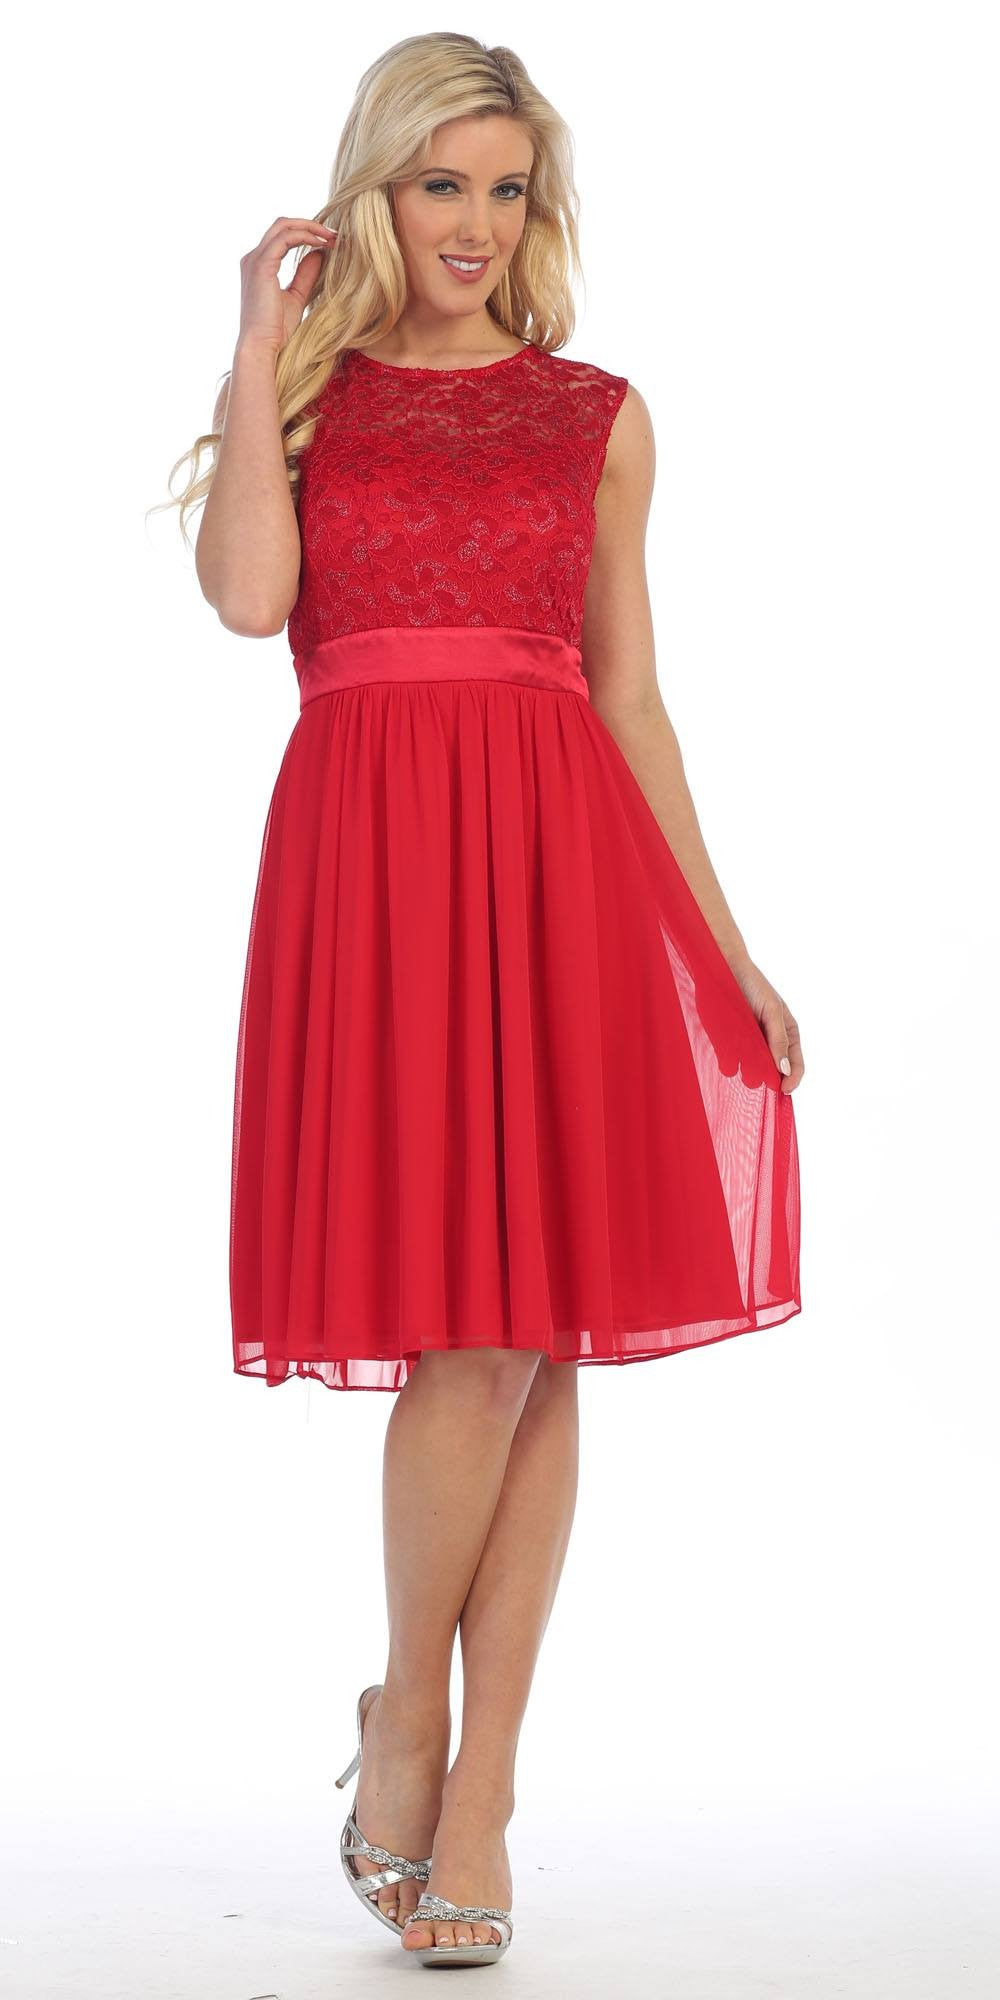 Red dresses lace catalog photo